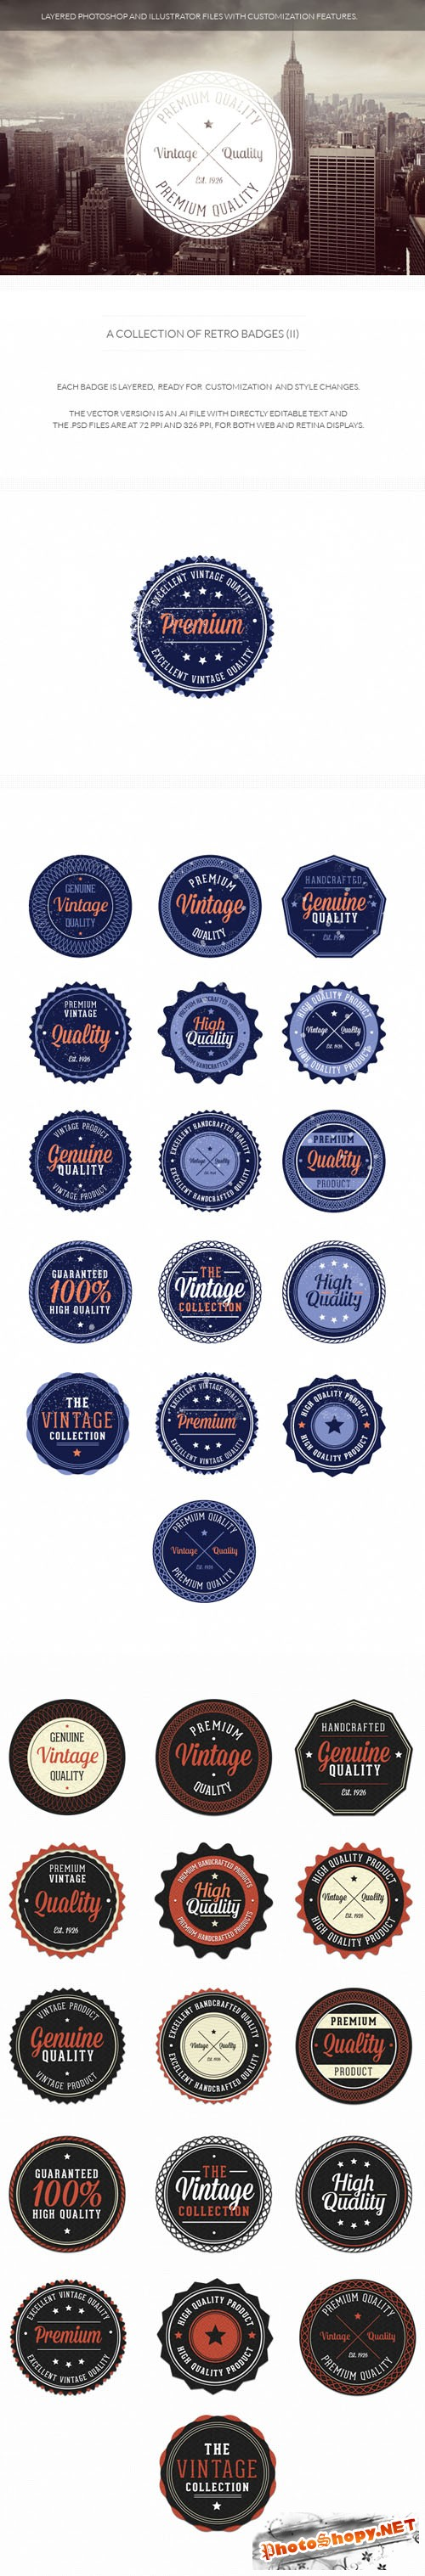 Retro Badges Set 2 Photoshop Templates